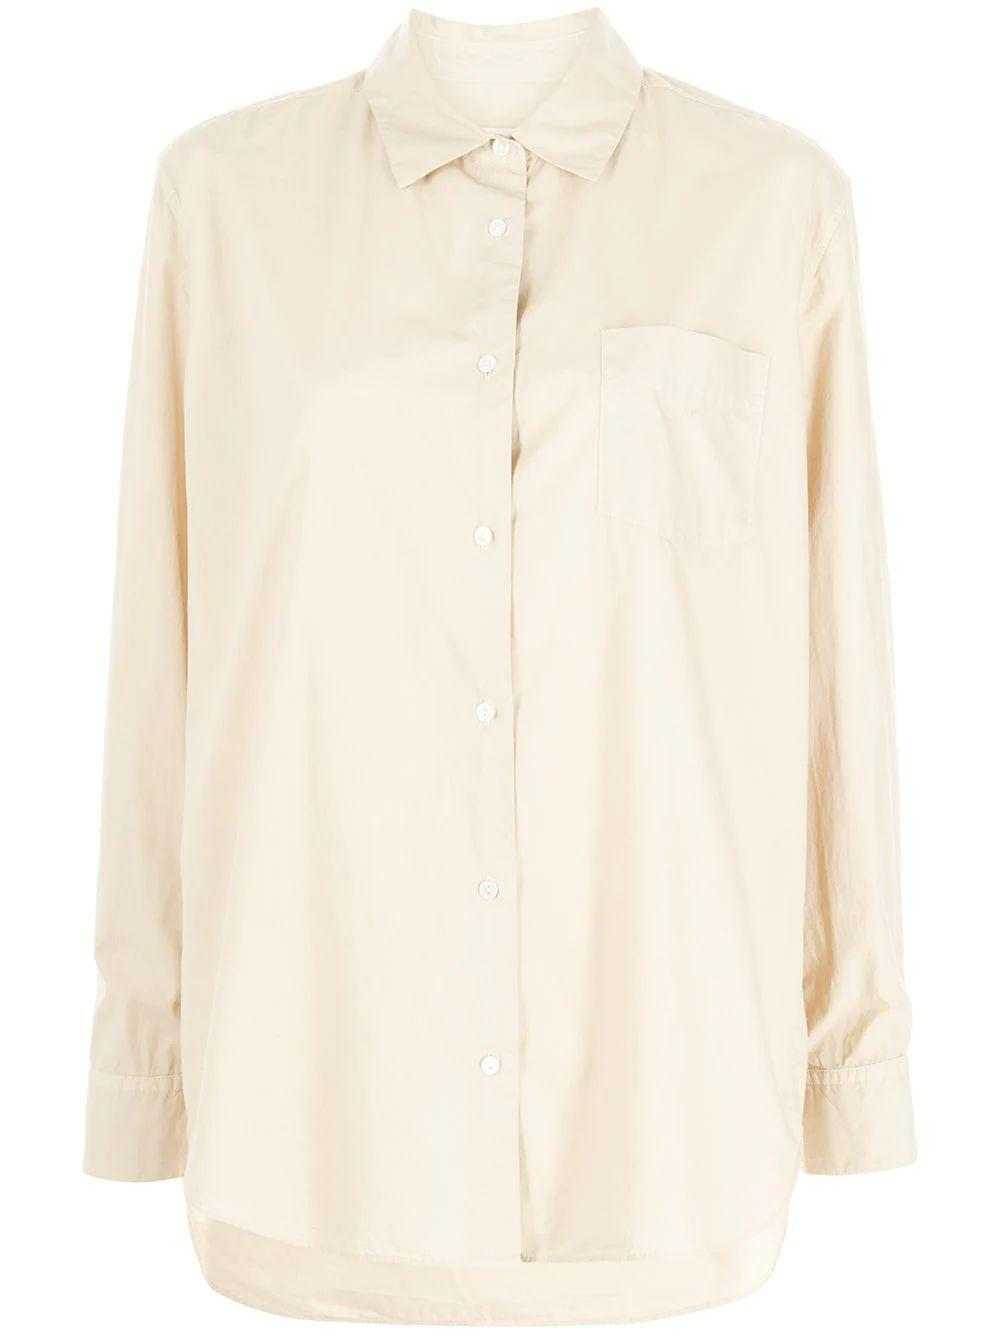 Kristen Relaxed Button Up Shirt